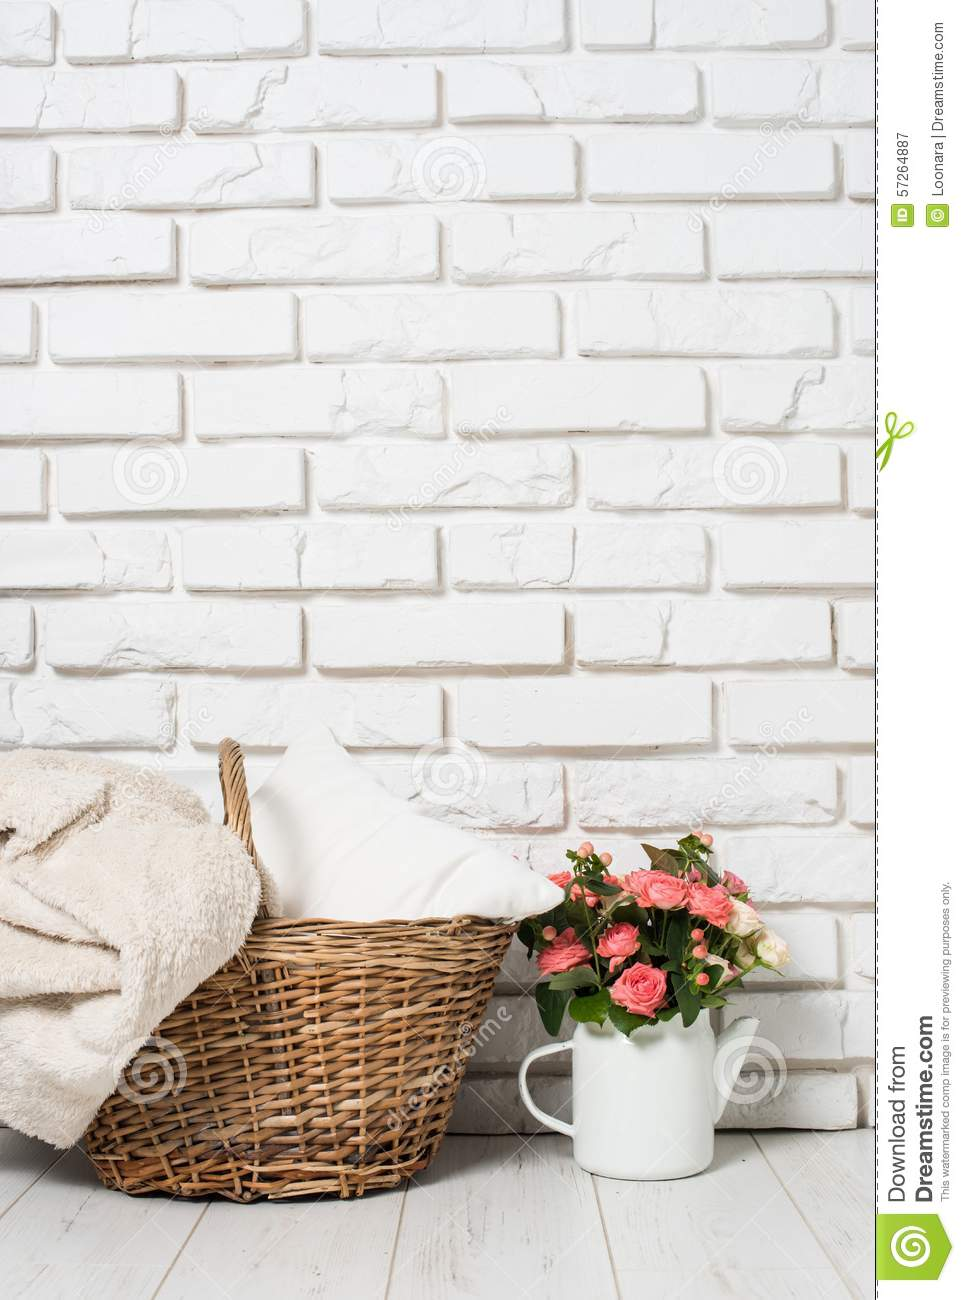 Cozy country home decor stock photo image 57264887 for Home decor nearby